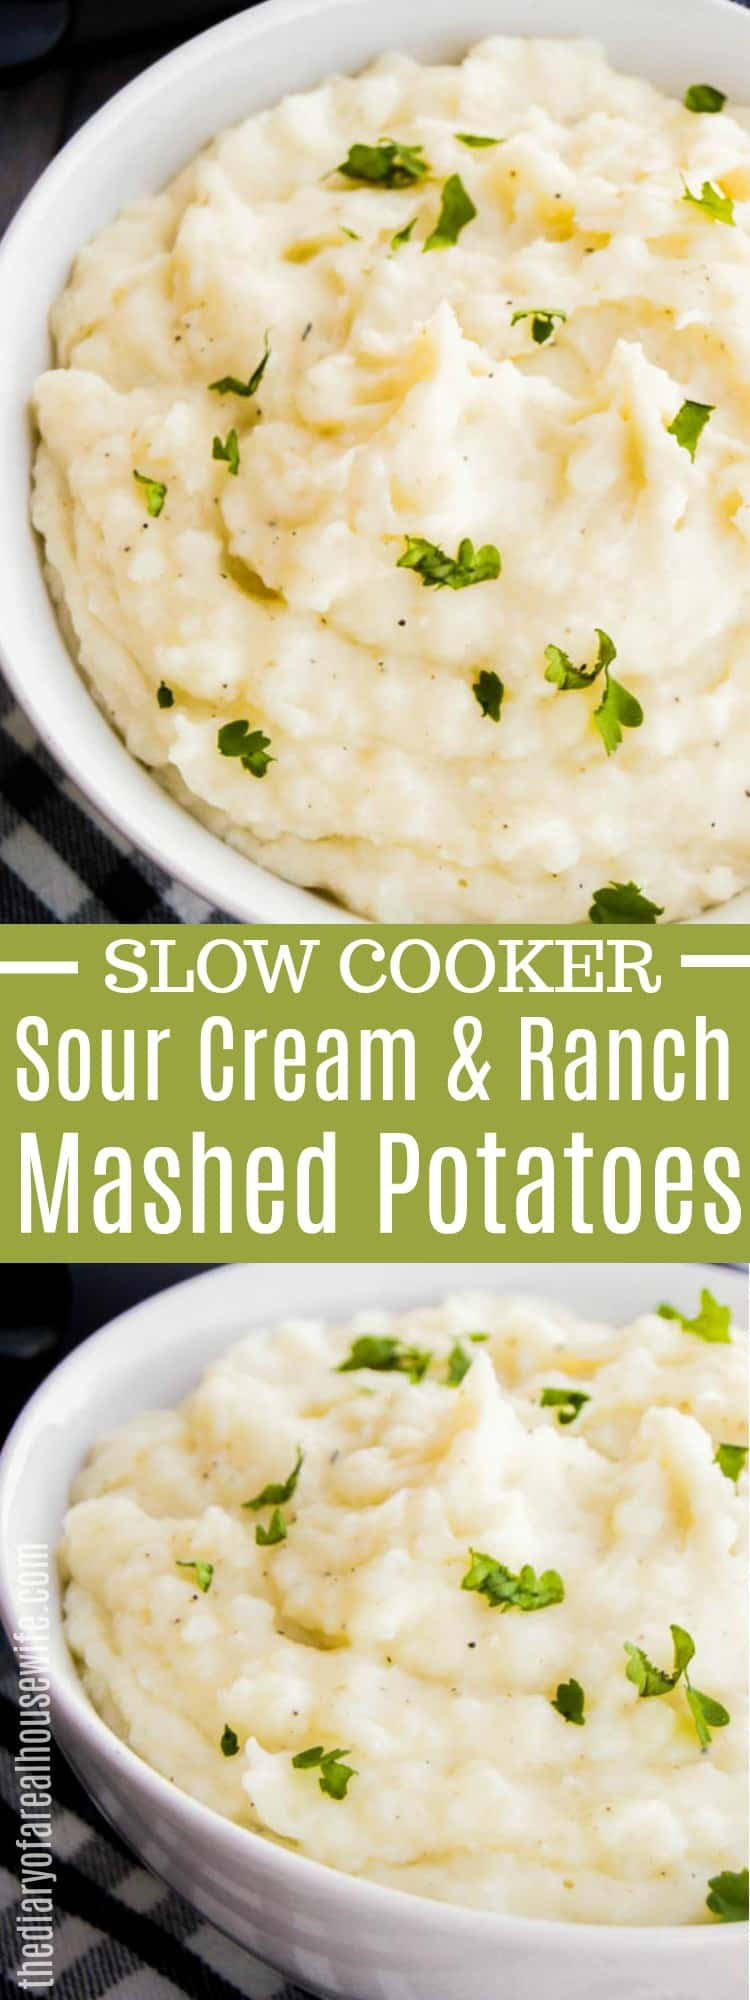 Slow Cooker Sour Cream and Ranch Mashed Potatoes